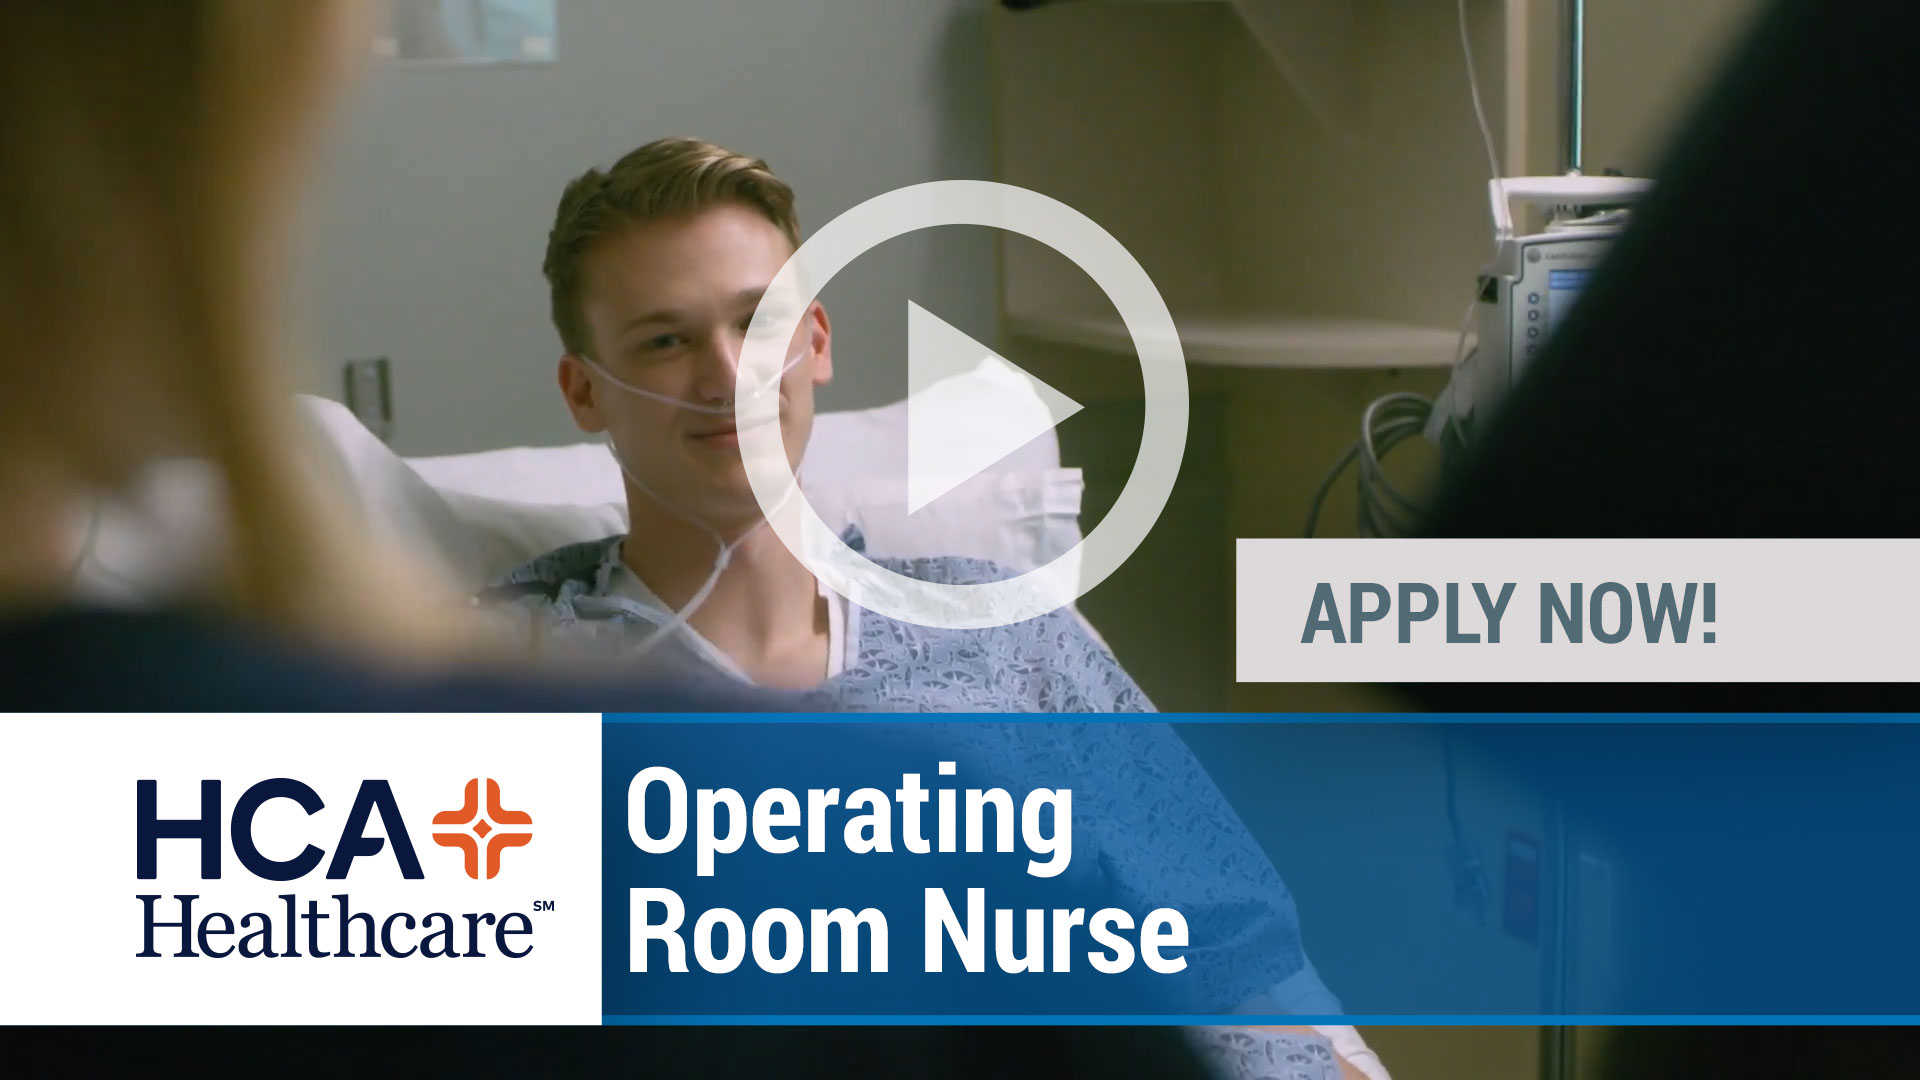 Watch our careers video for available job opening Operating Room Nurse in St. Petersburg, Florida